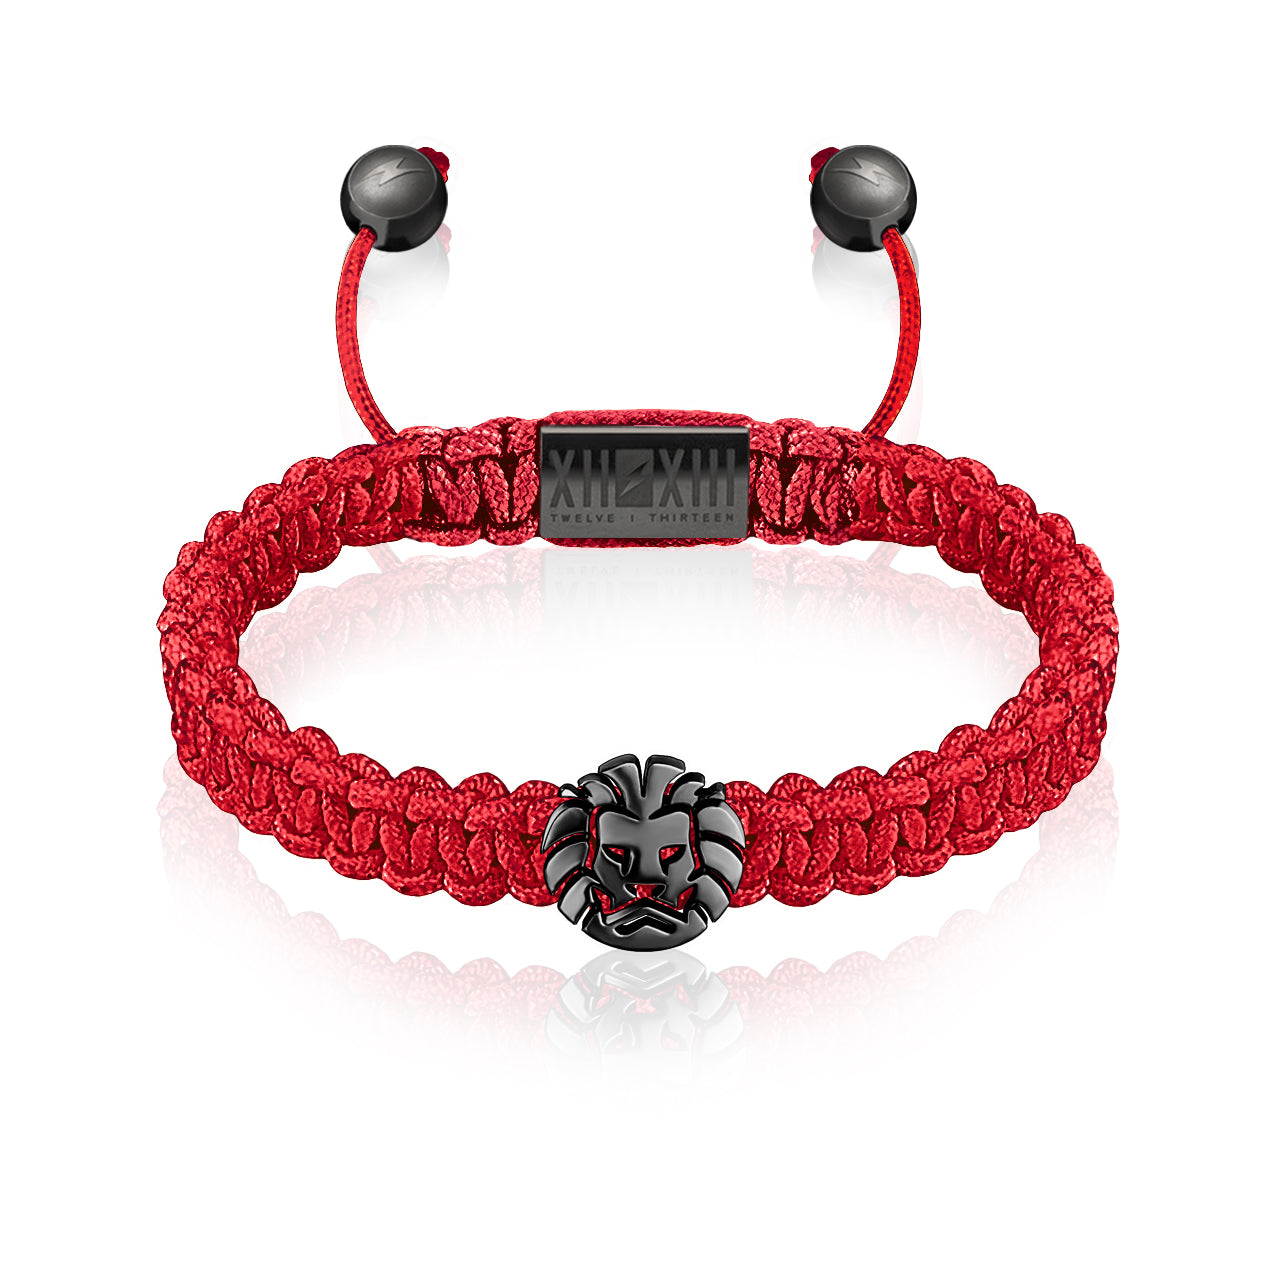 WATCHANISH by Twelve Thirteen Jewelry macramé braided bracelet - Red/Polished Black